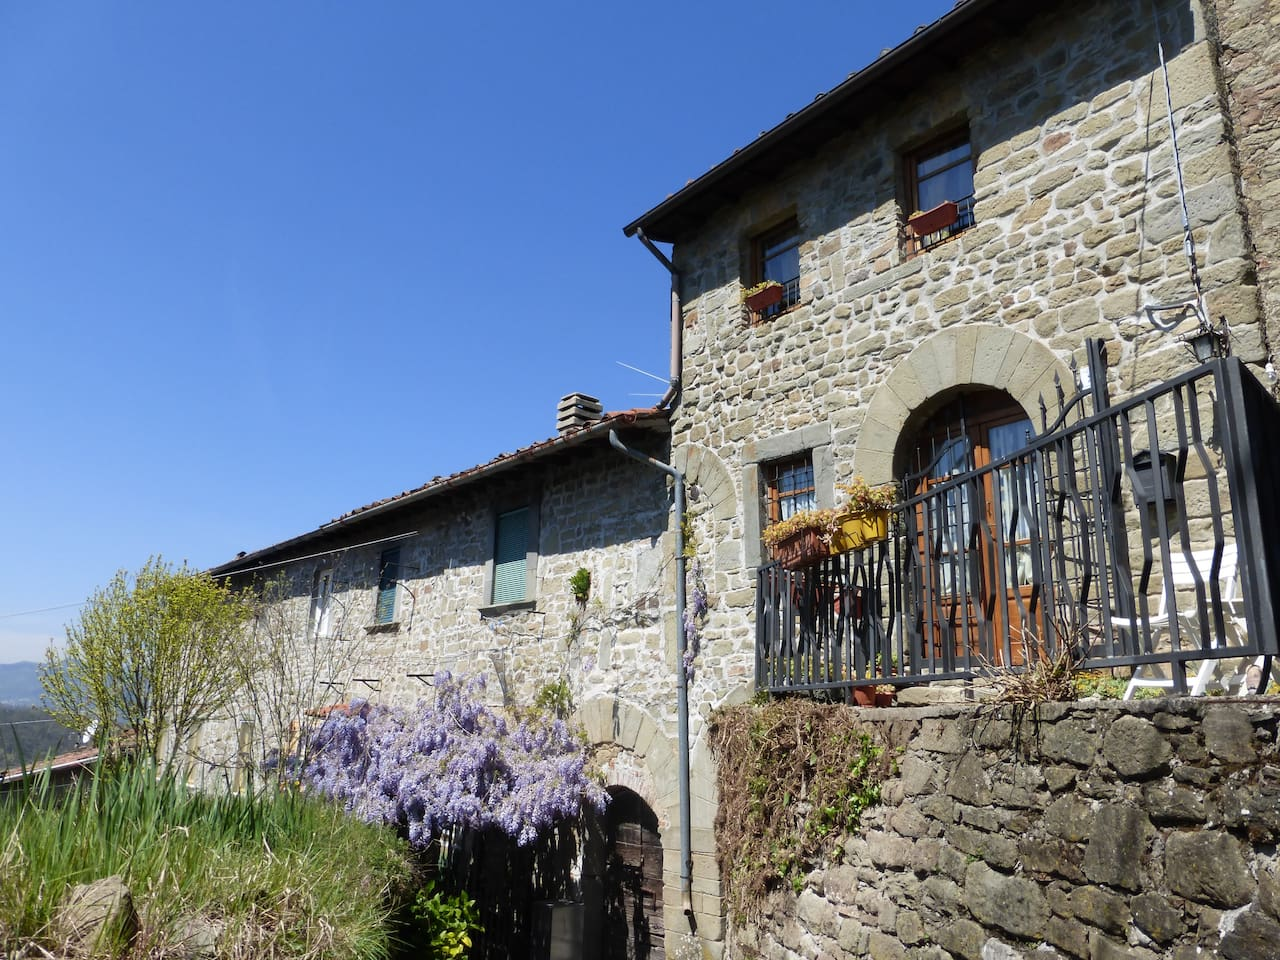 L' esterno della casa - The outside of the house